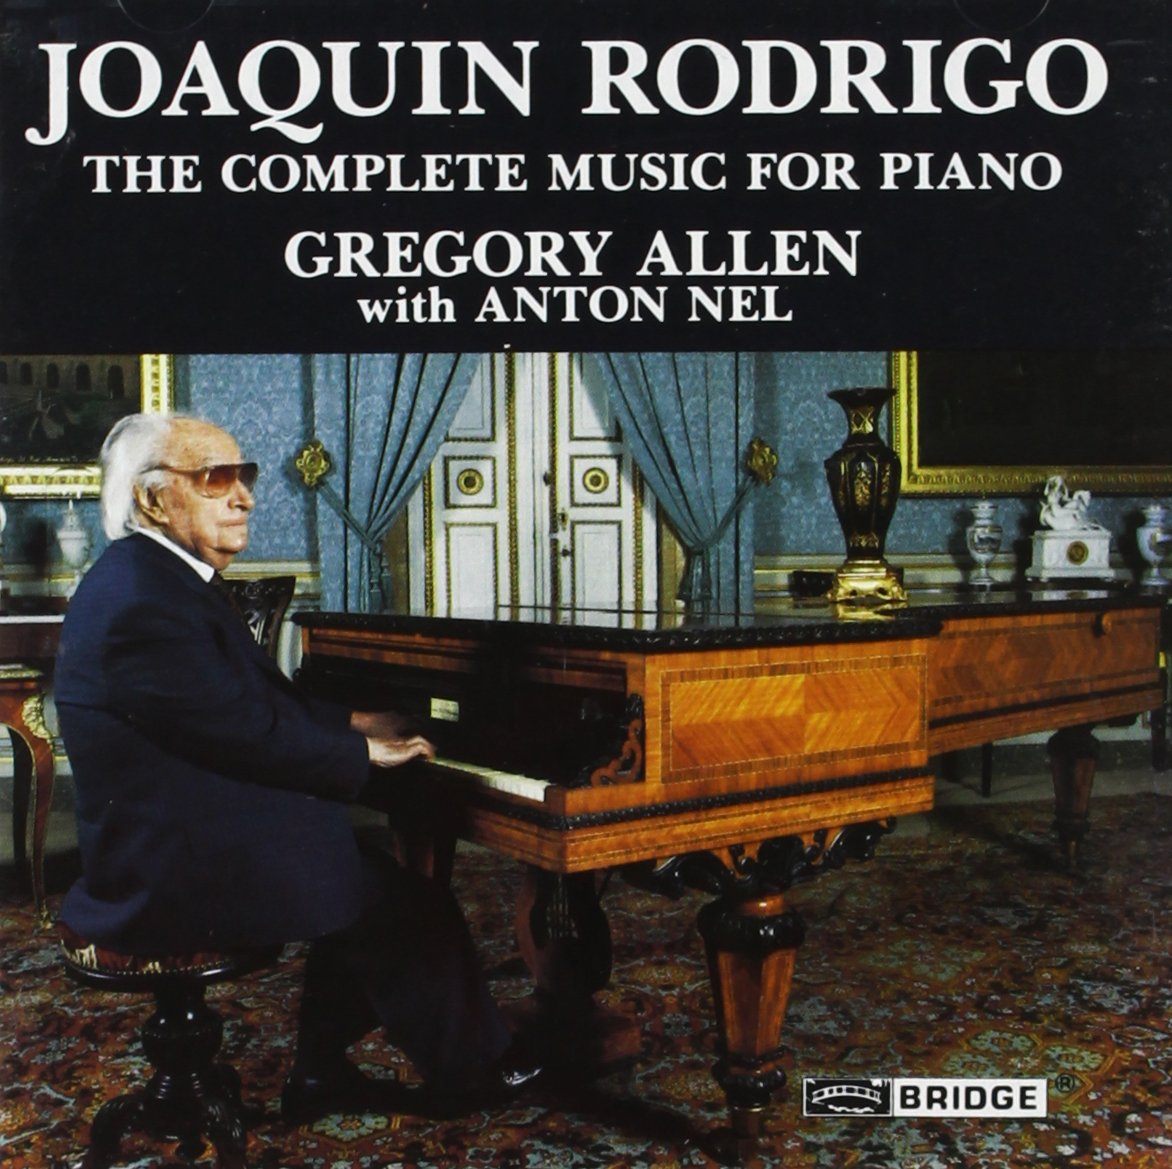 Joaquin Rodrigo: The Complete Music for Piano